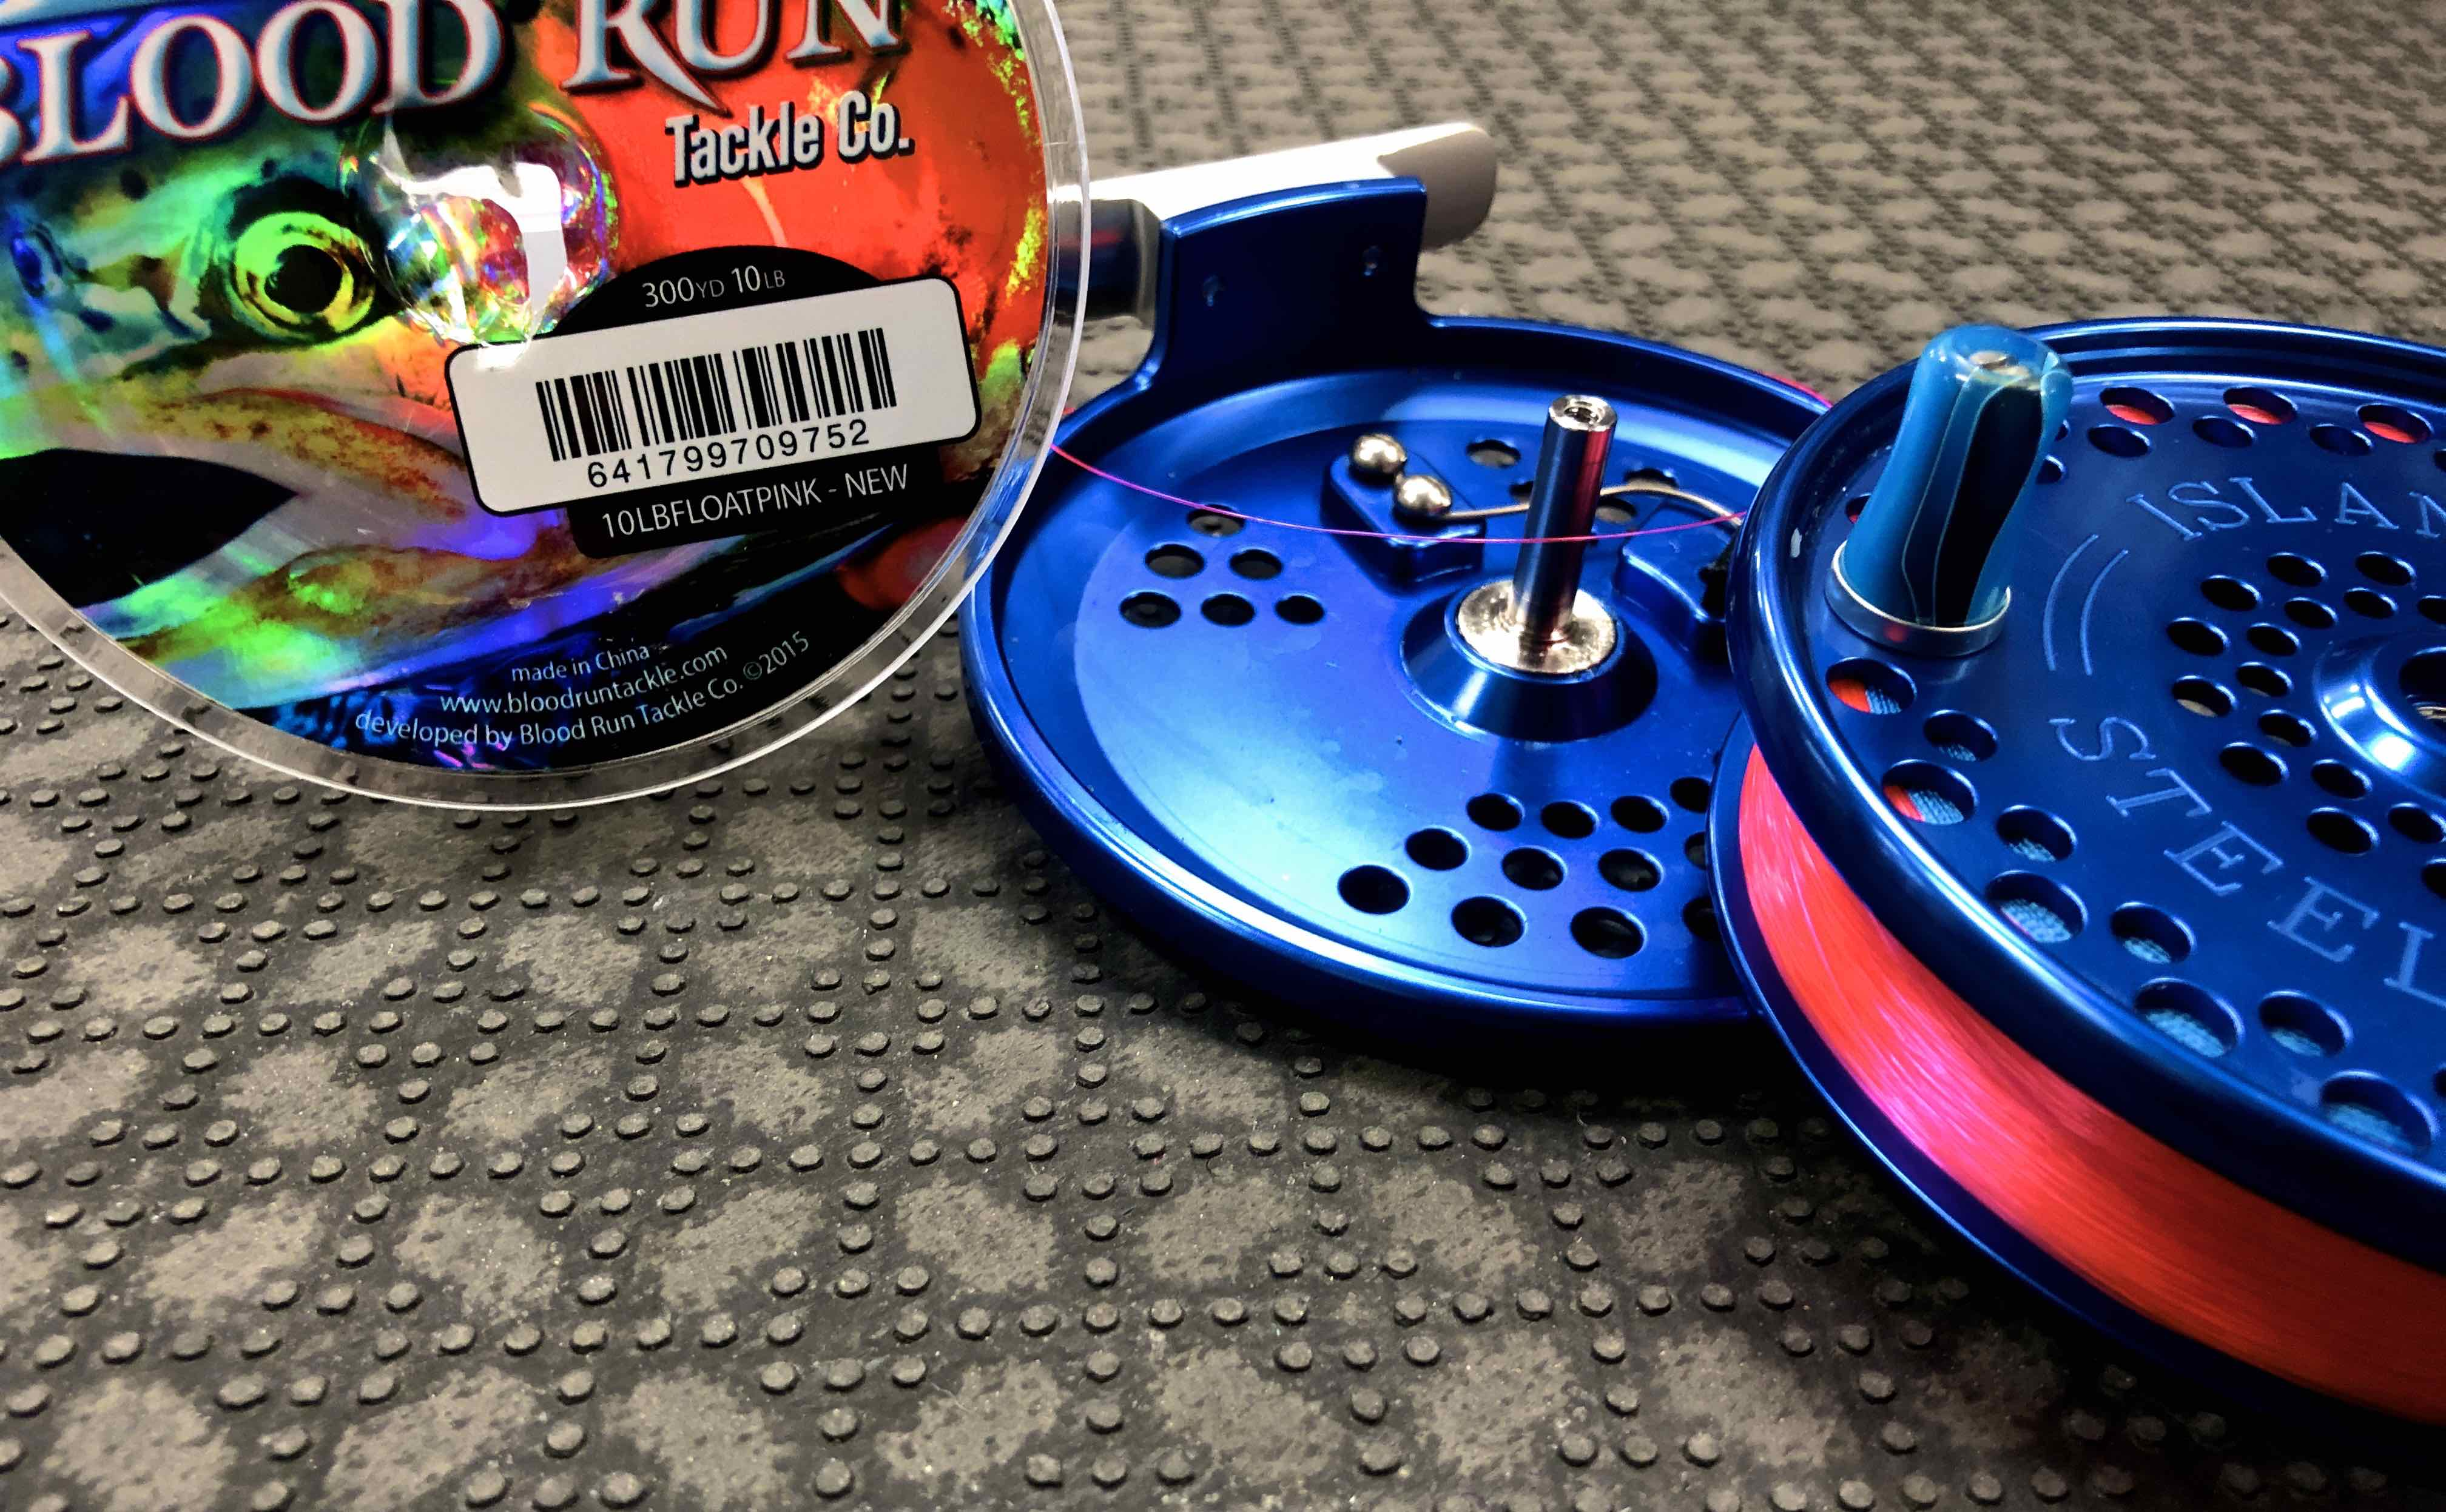 ISlander IS Steelheader Centerpin Float Reel Custom Blue Acrylic Handles Blood Run Centerpin Float Reel Fishing Line BBB